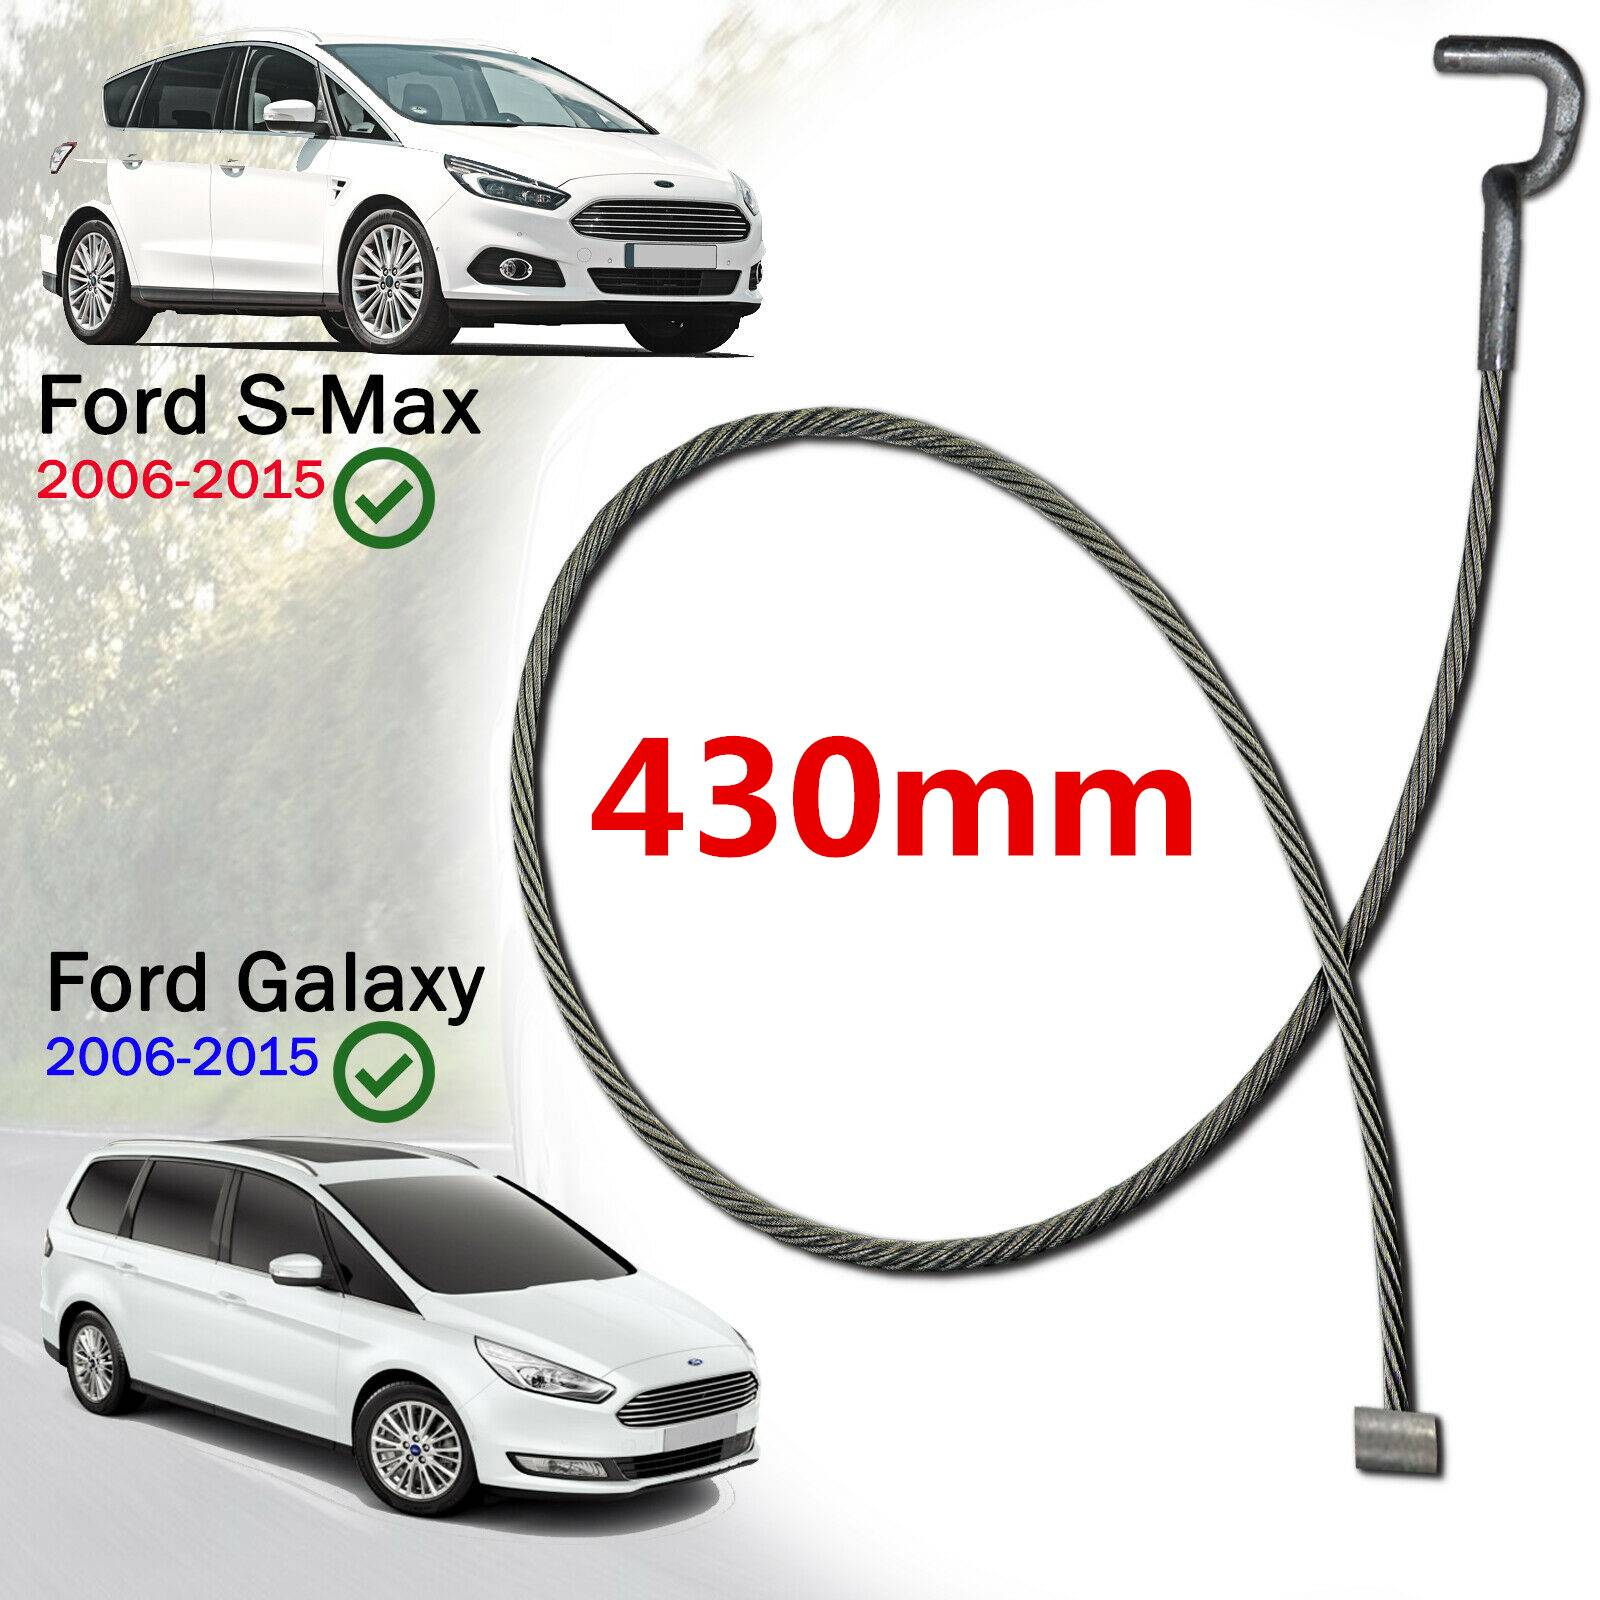 Ford GALAXY Handbrake-Handle/lever-Release-Cable S-Max/for